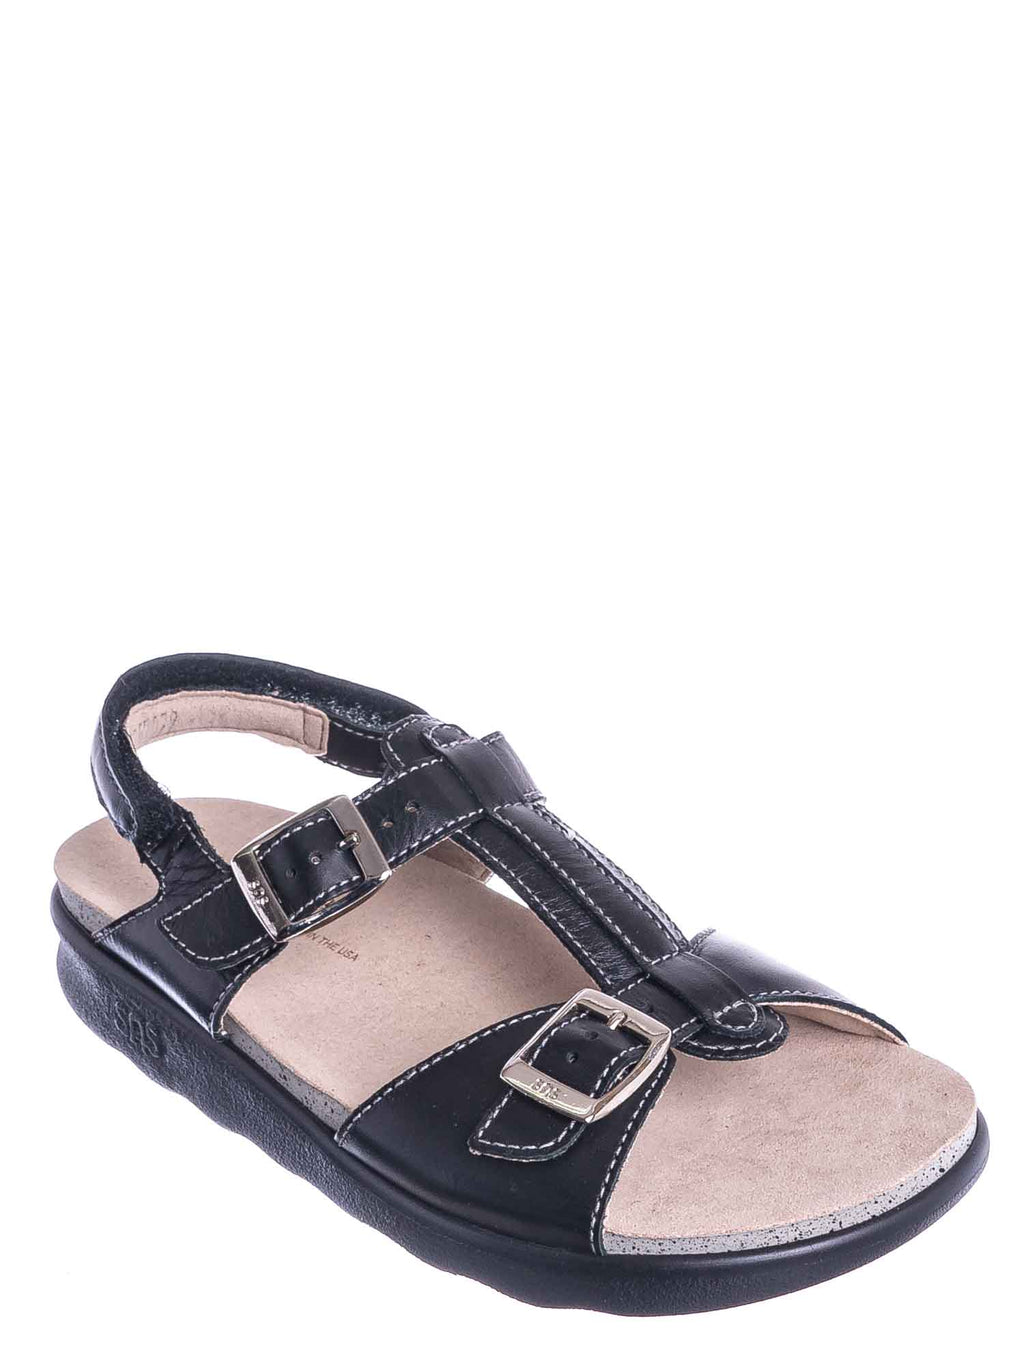 SAS Shoes - Captiva T Strap Molded Footbed Sandal - Women Slingback Comfortable Foam Shoe